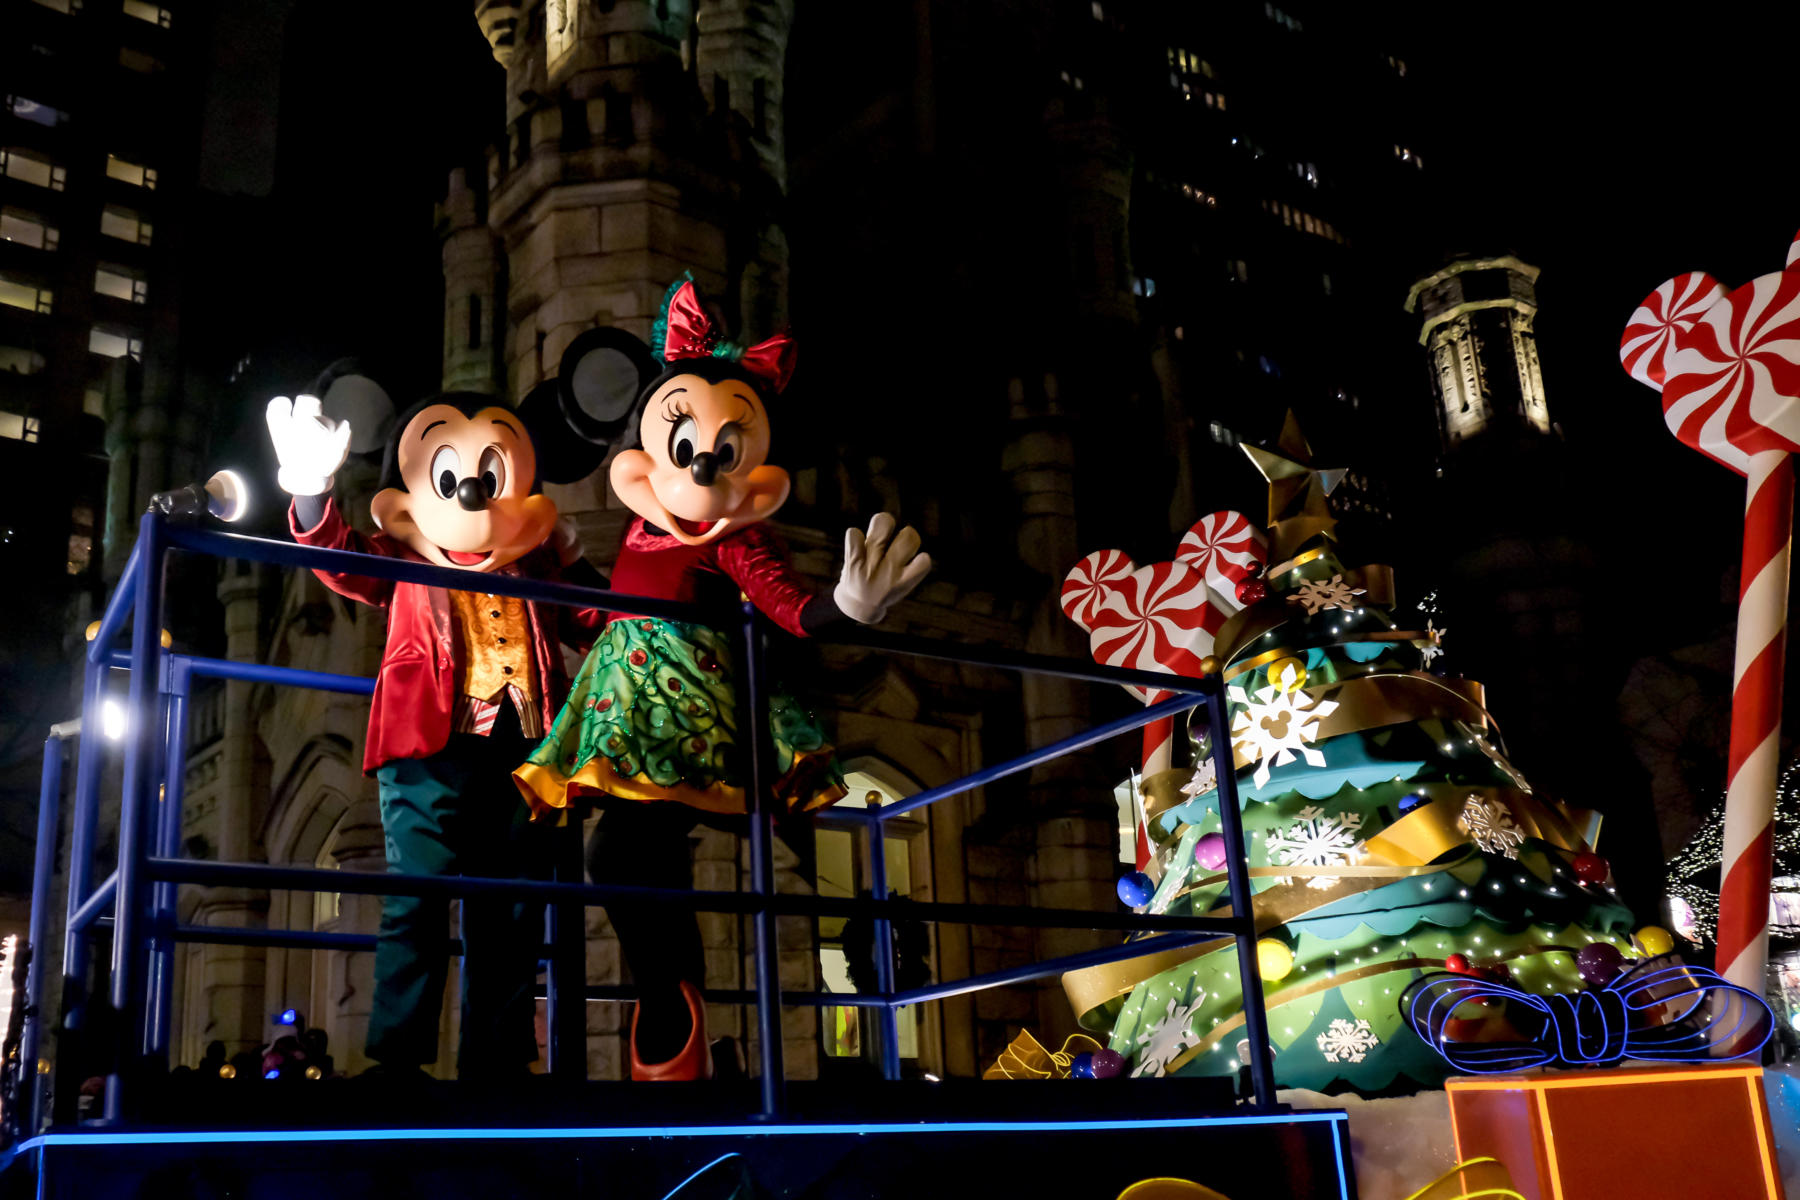 Your guide to The Magnificent Mile Lights Festival